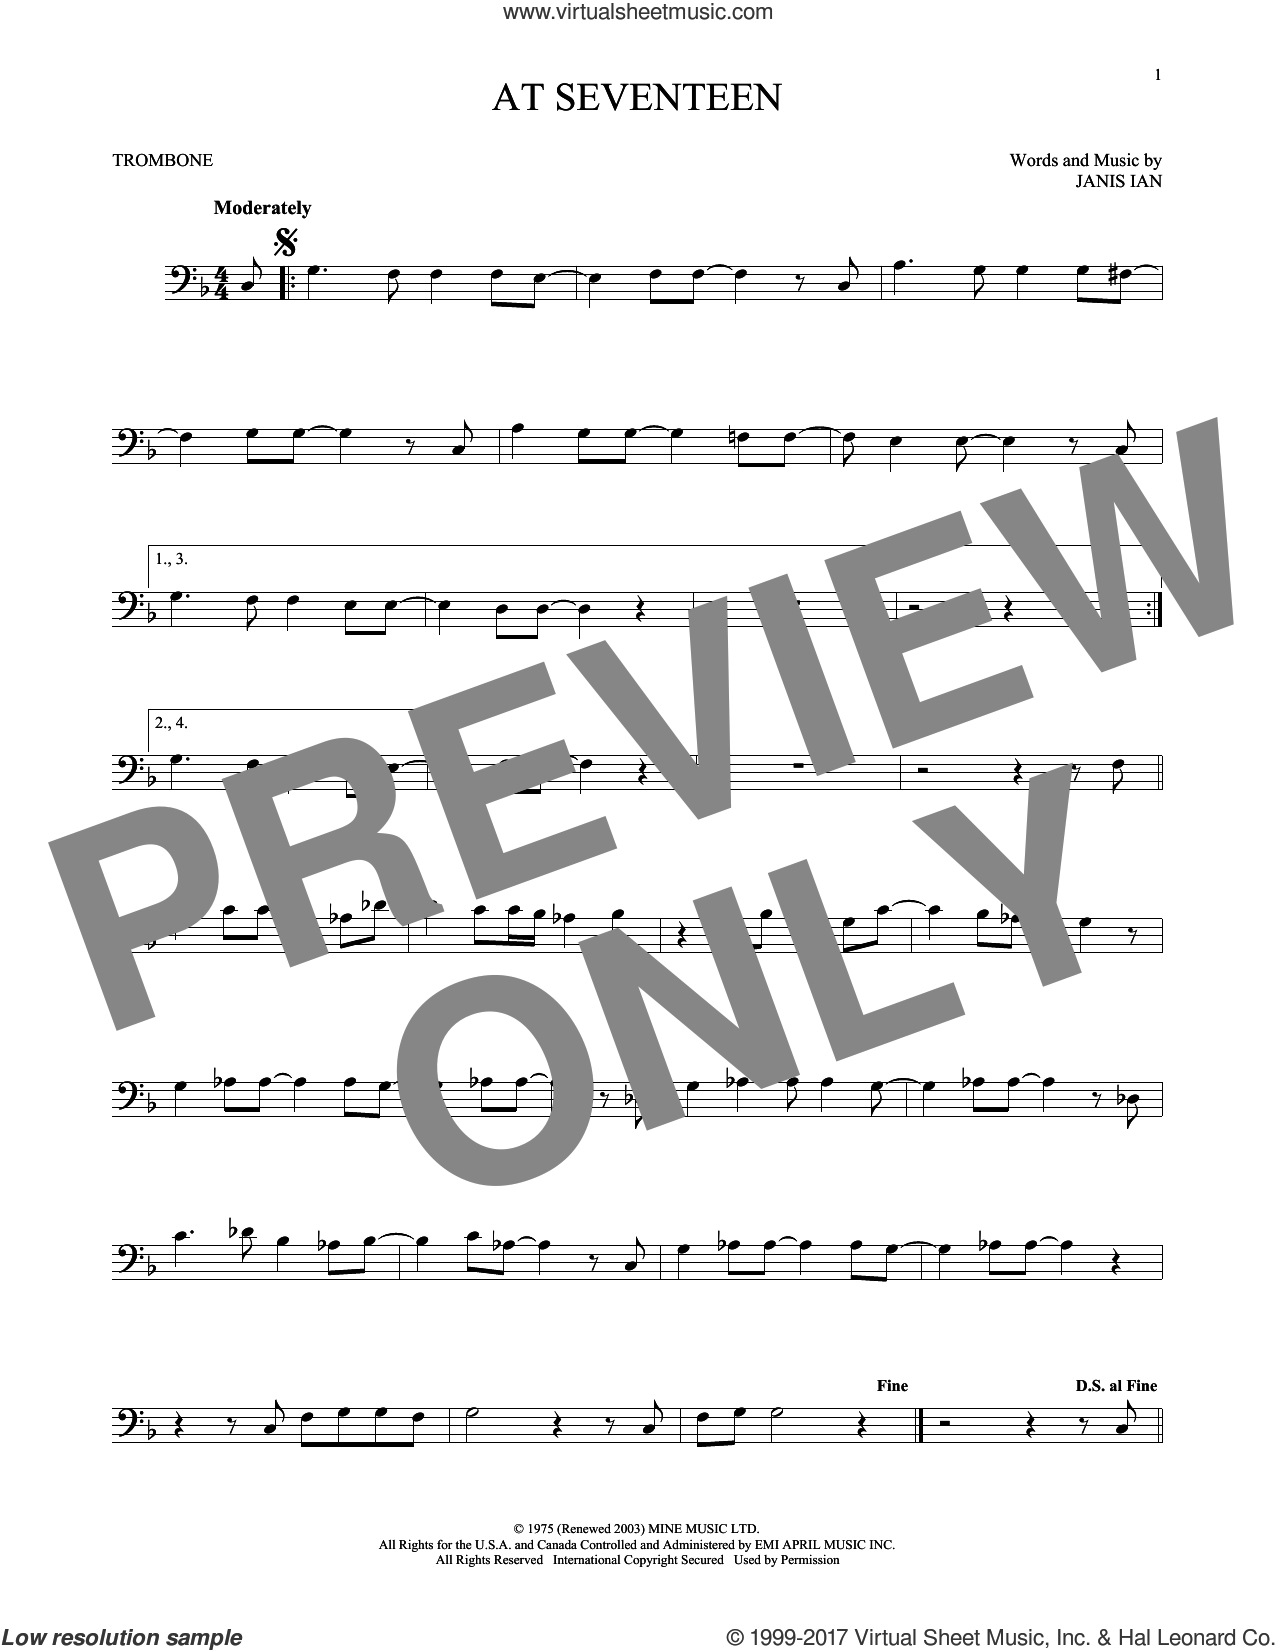 At Seventeen sheet music for trombone solo by Janis Ian, intermediate skill level